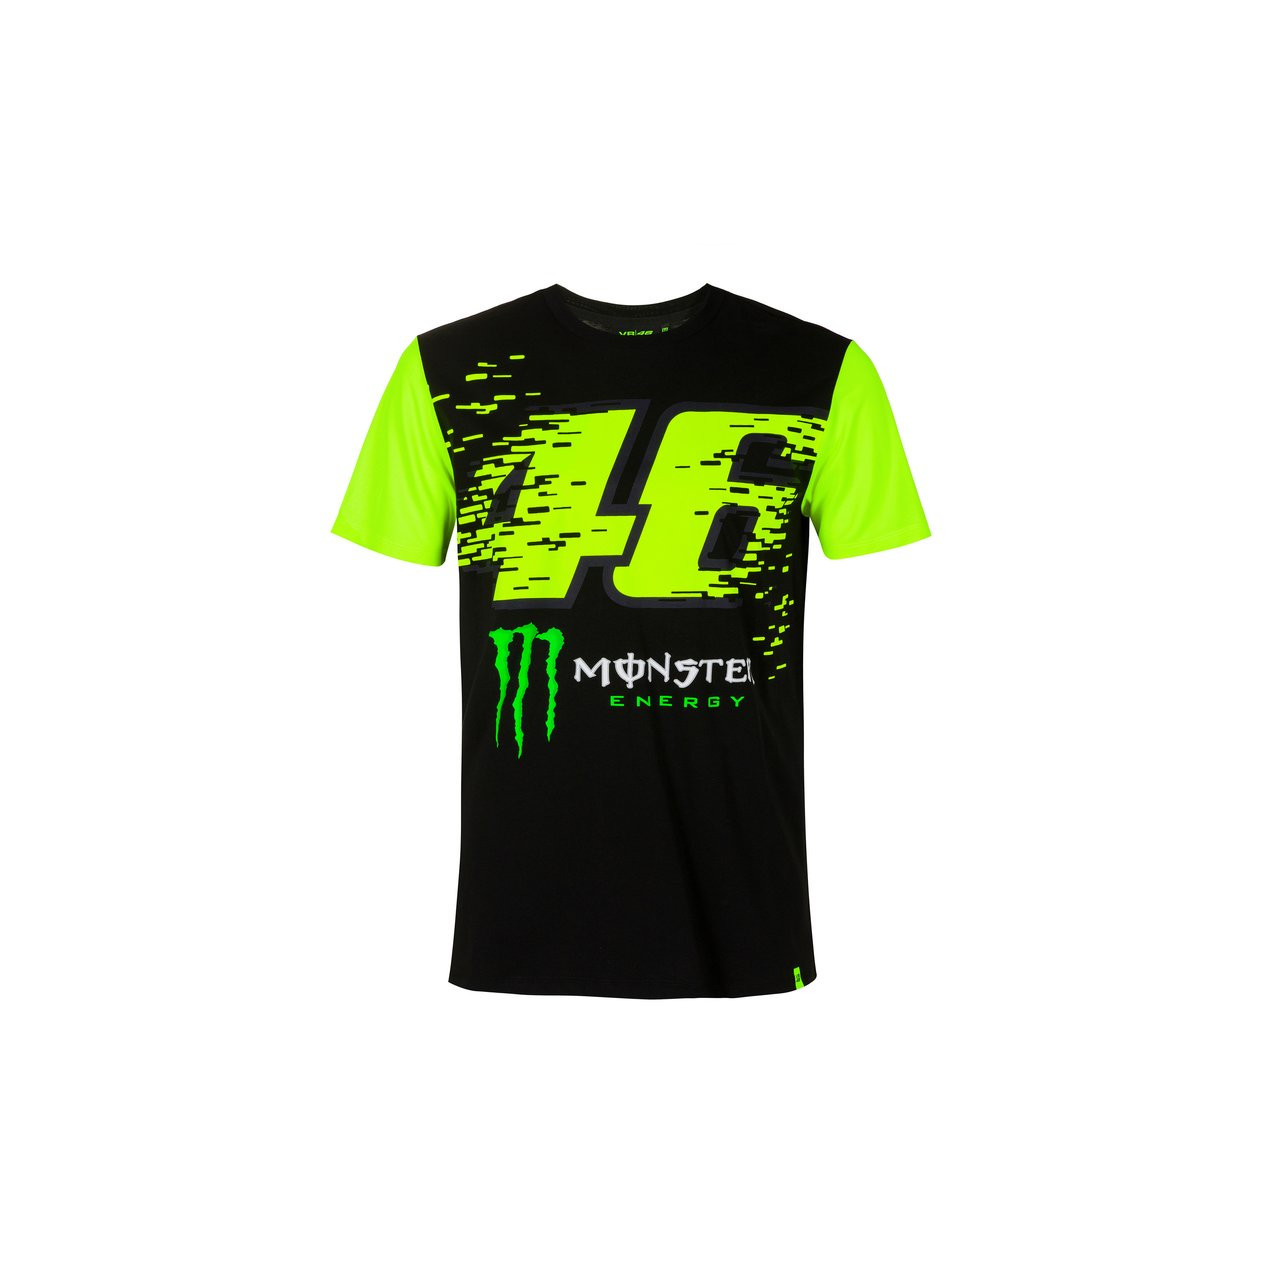 VALENTINO ROSSI T-shirt homme Monster VR46 2020 Monza